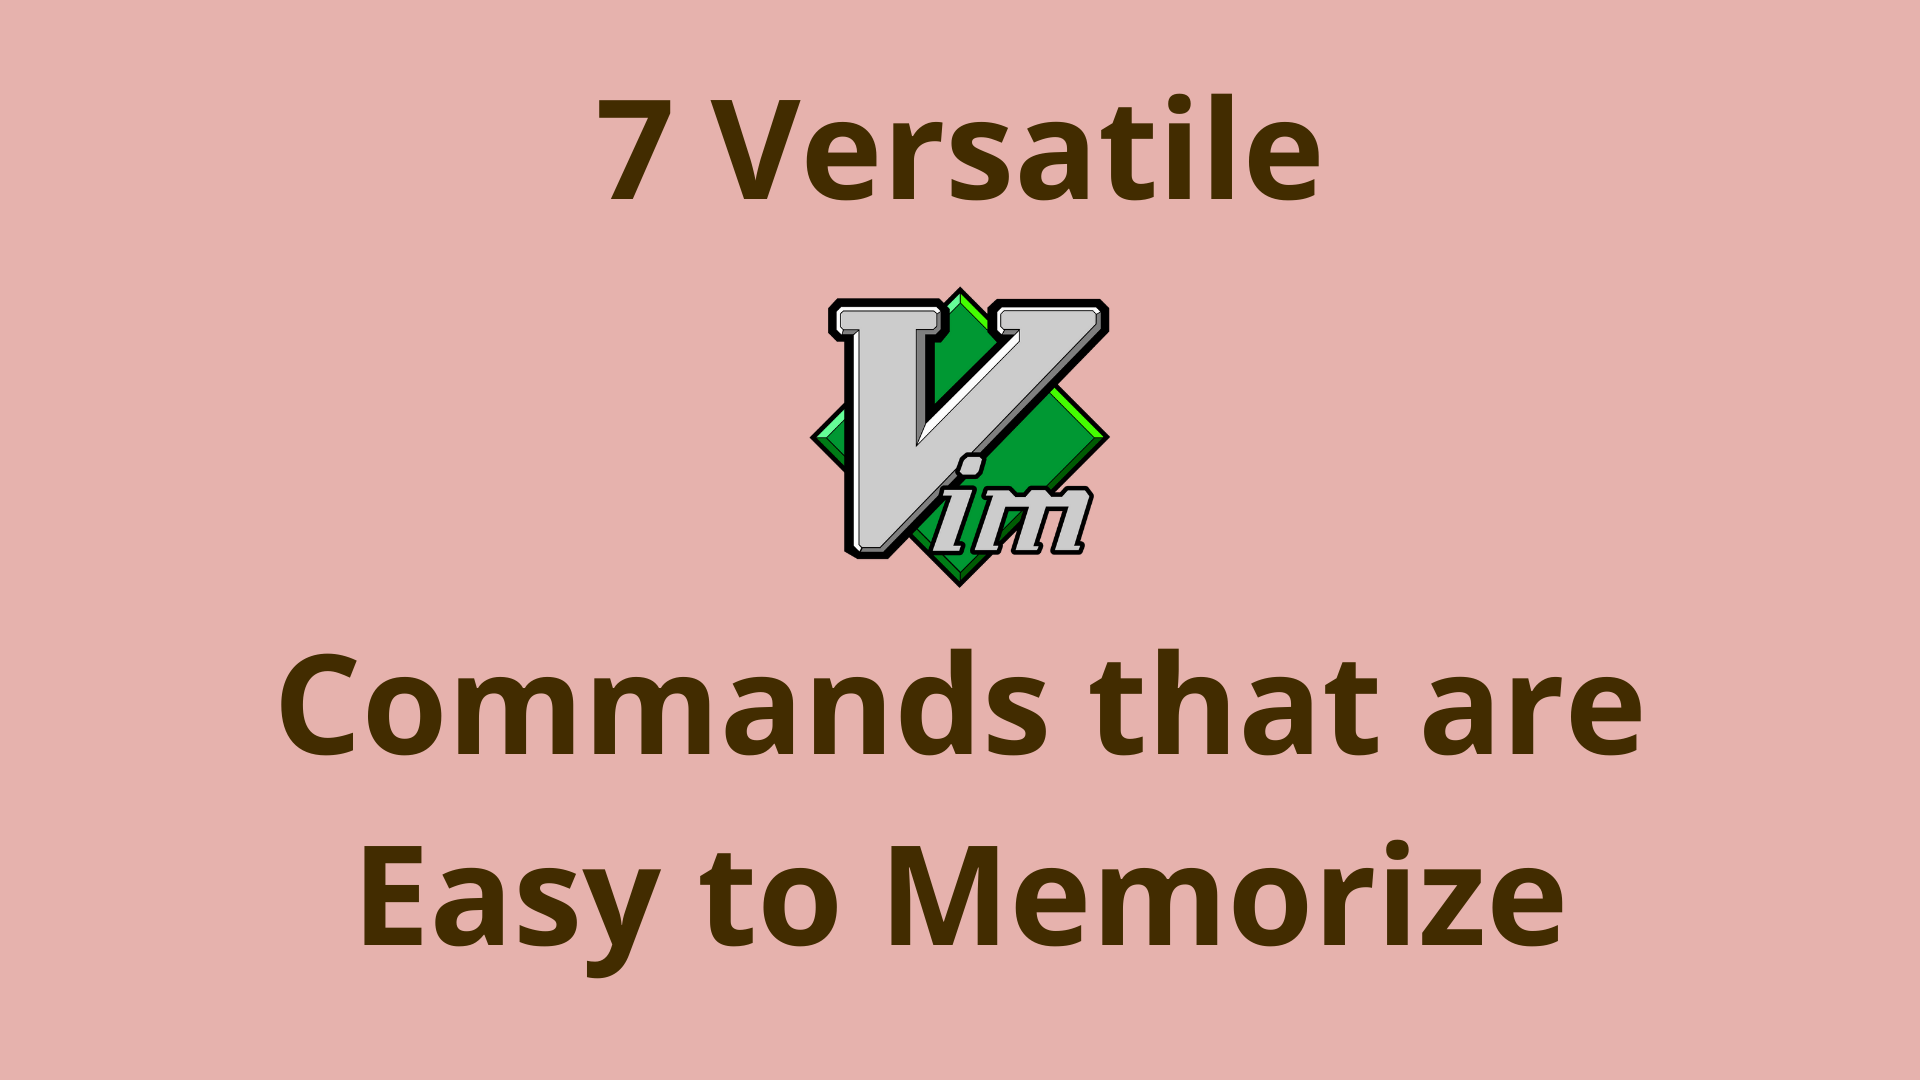 Image of 7 versatile Vim commands that are easy to memorize